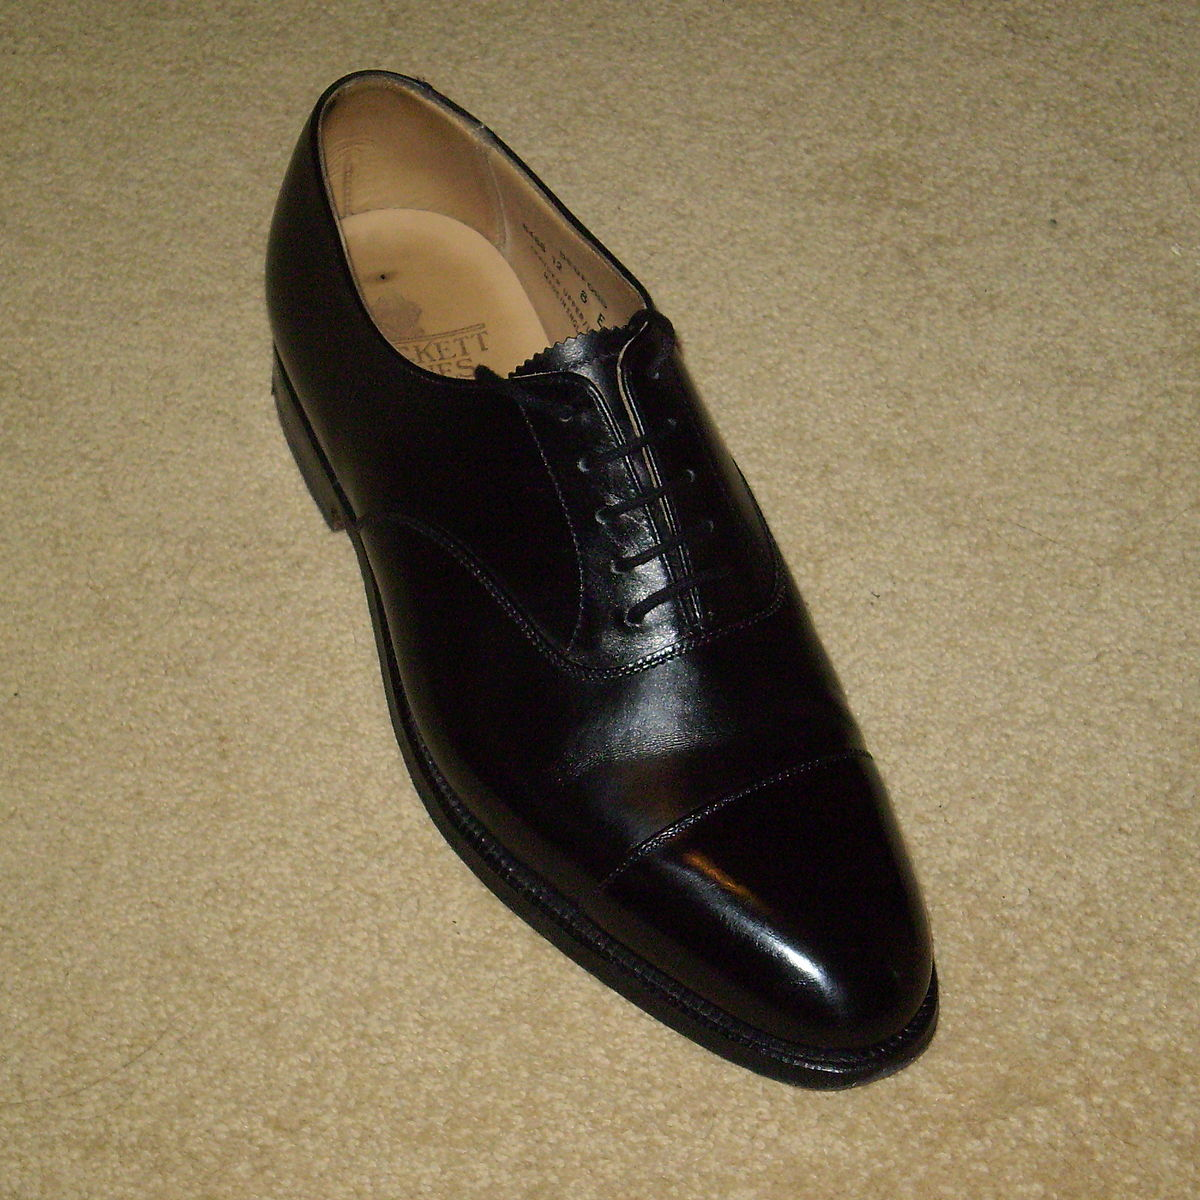 Best Dress Shoes For Fallen Arches